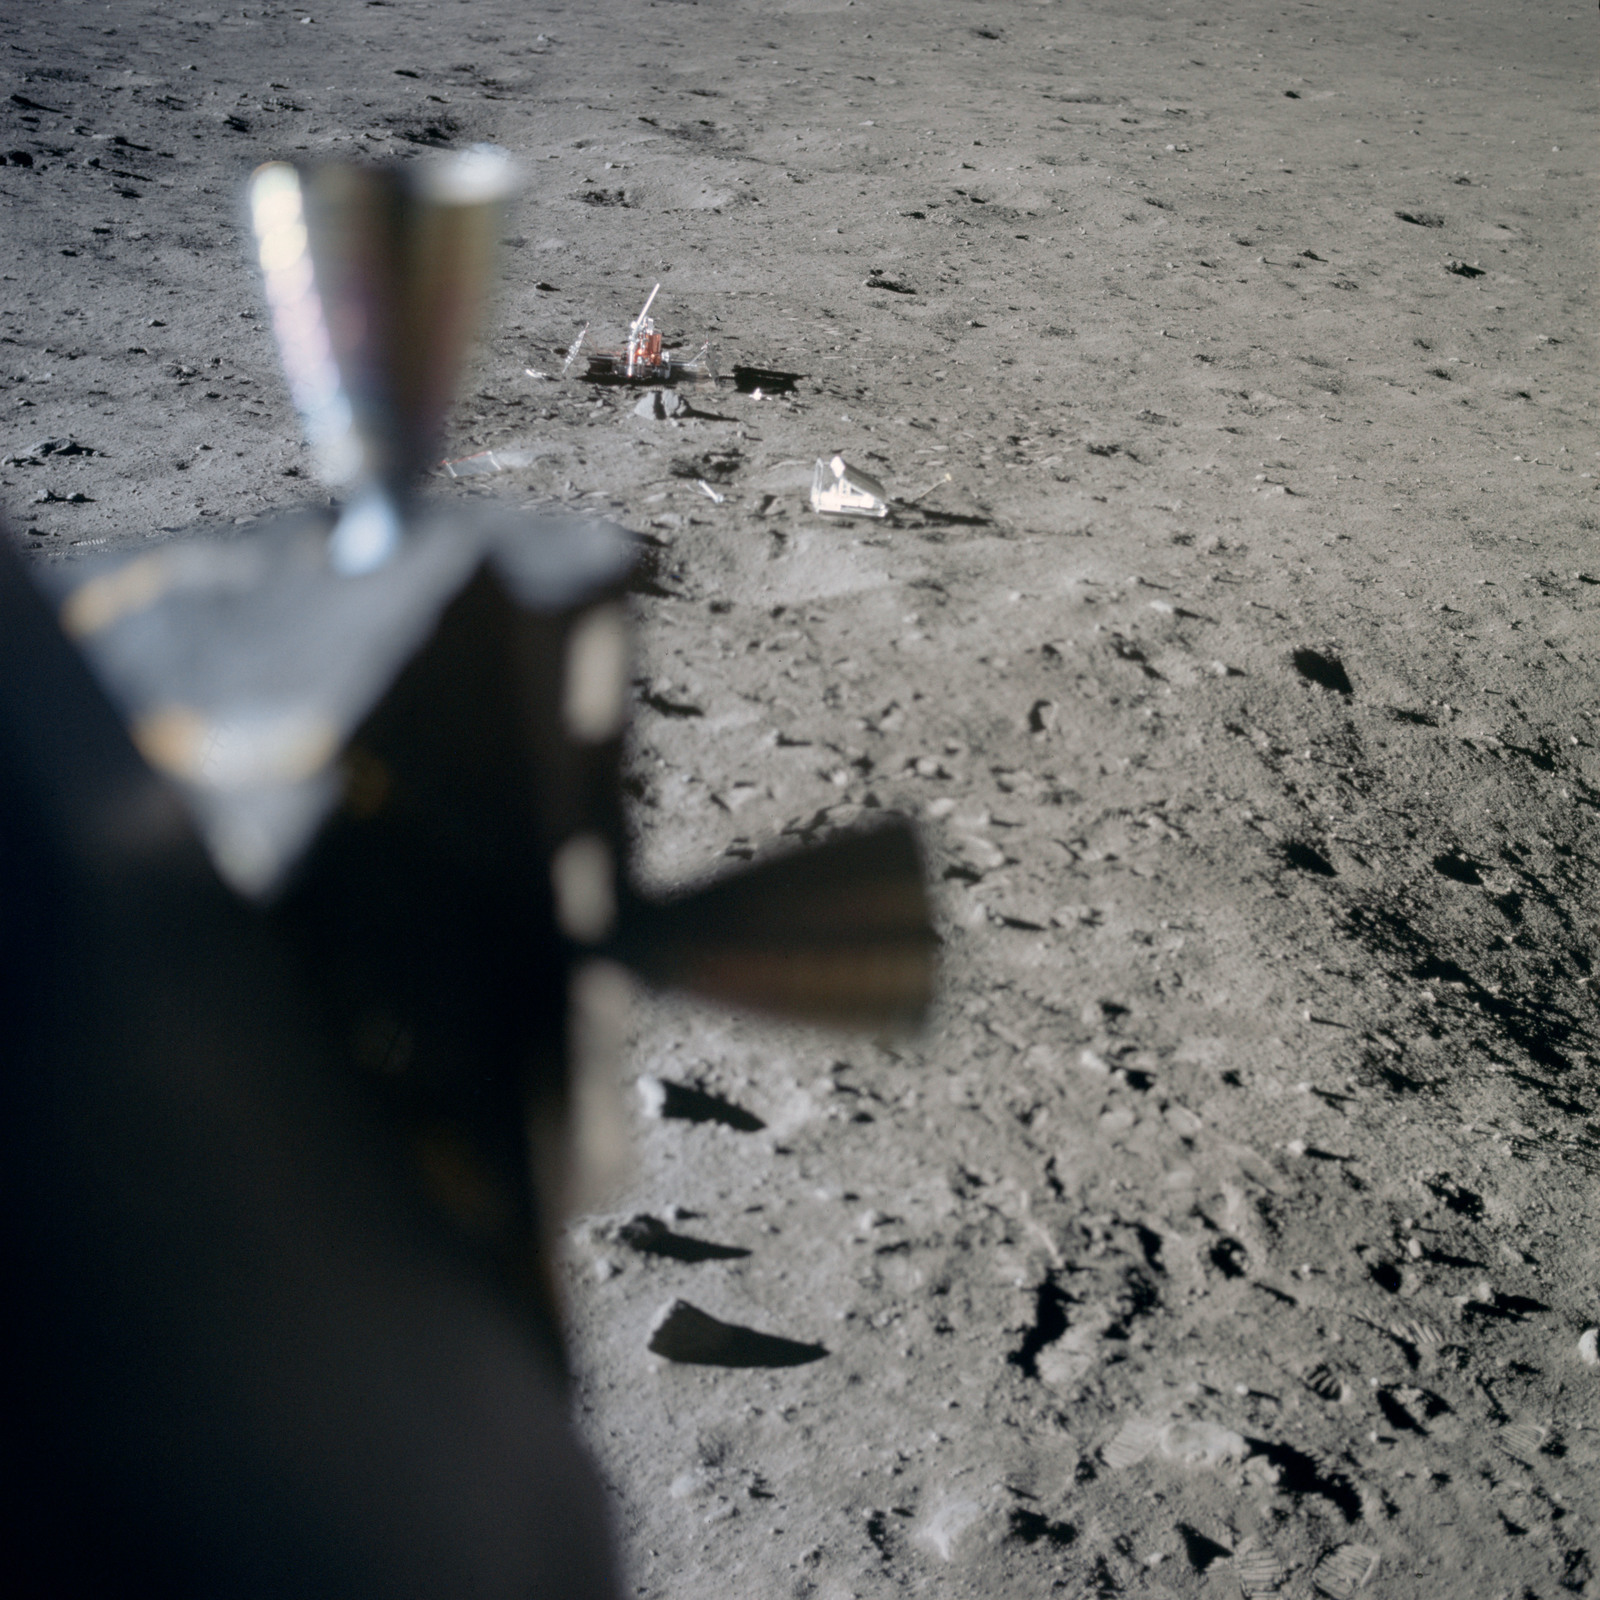 AS11-37-5551 - Apollo 11 - Apollo 11 Mission image - Lunar surface at Tranquility Base